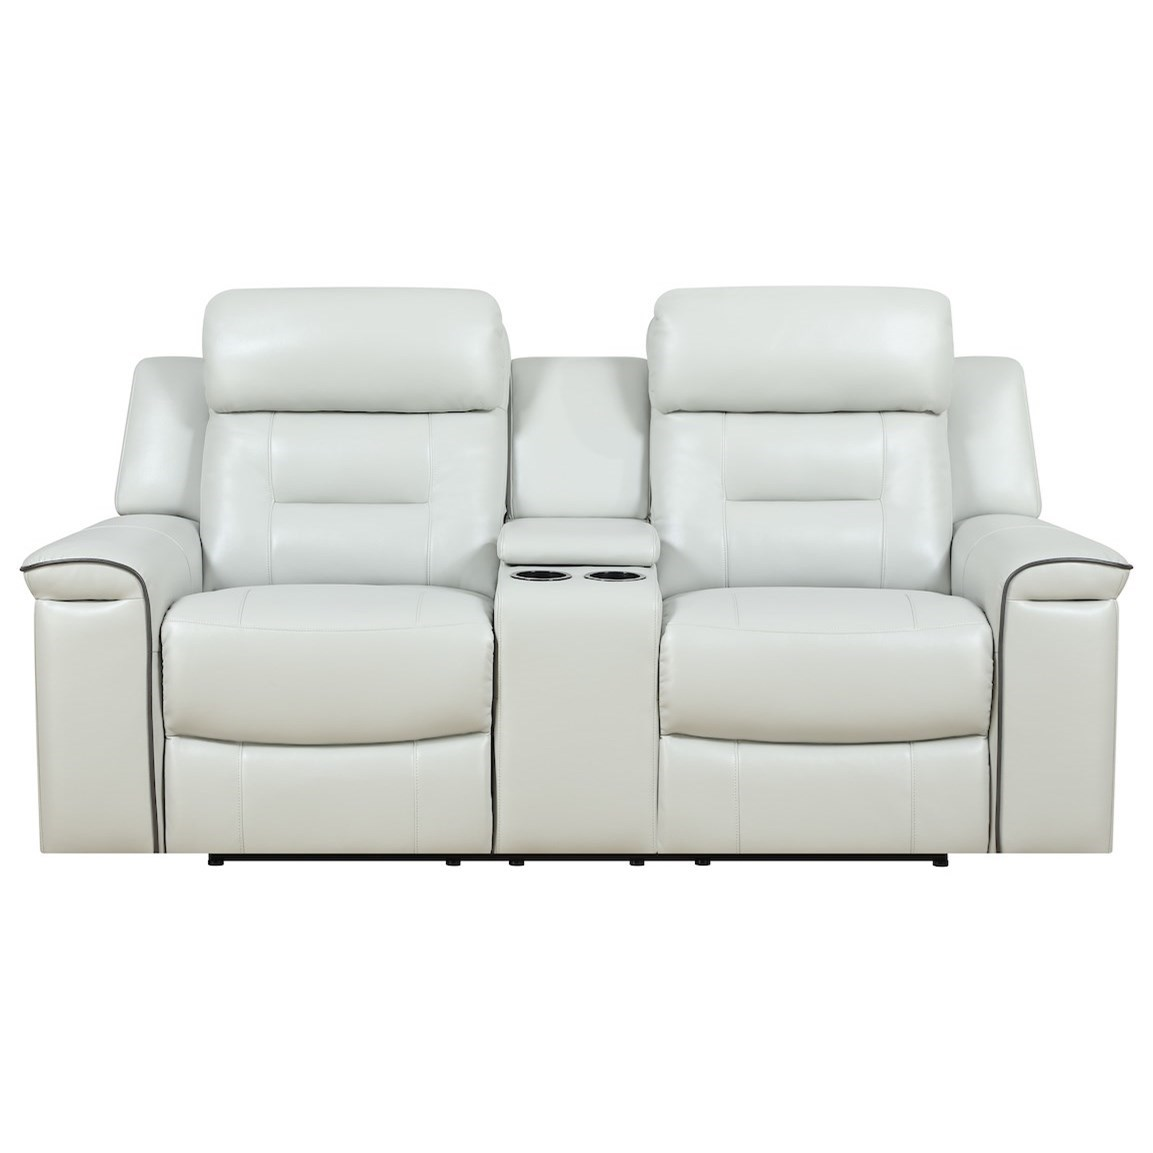 Islander Console Reclining Loveseat by Klaussner International at Northeast Factory Direct